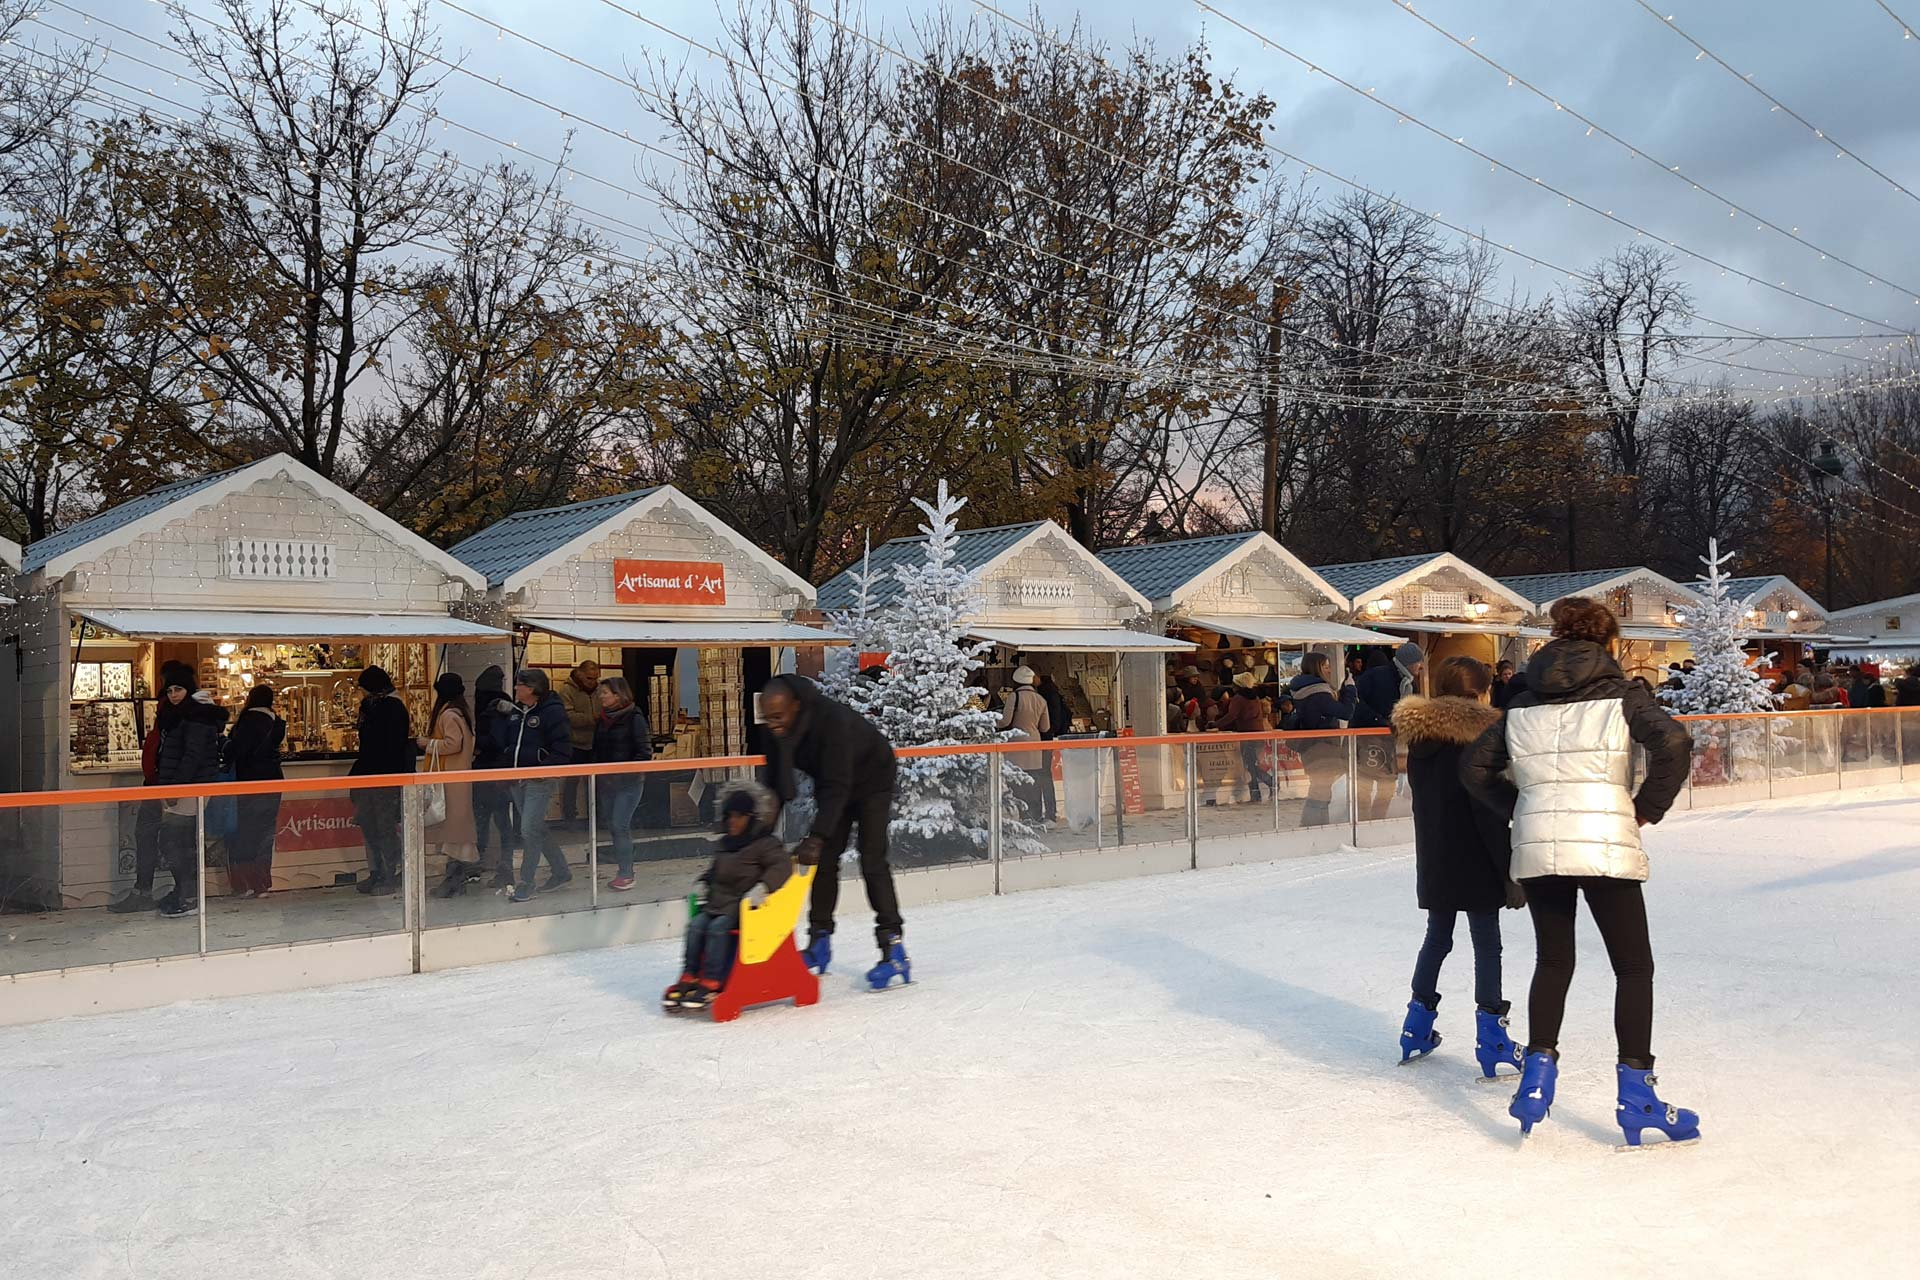 Ice skating at the Tuileries Garden Christmas Market in Paris